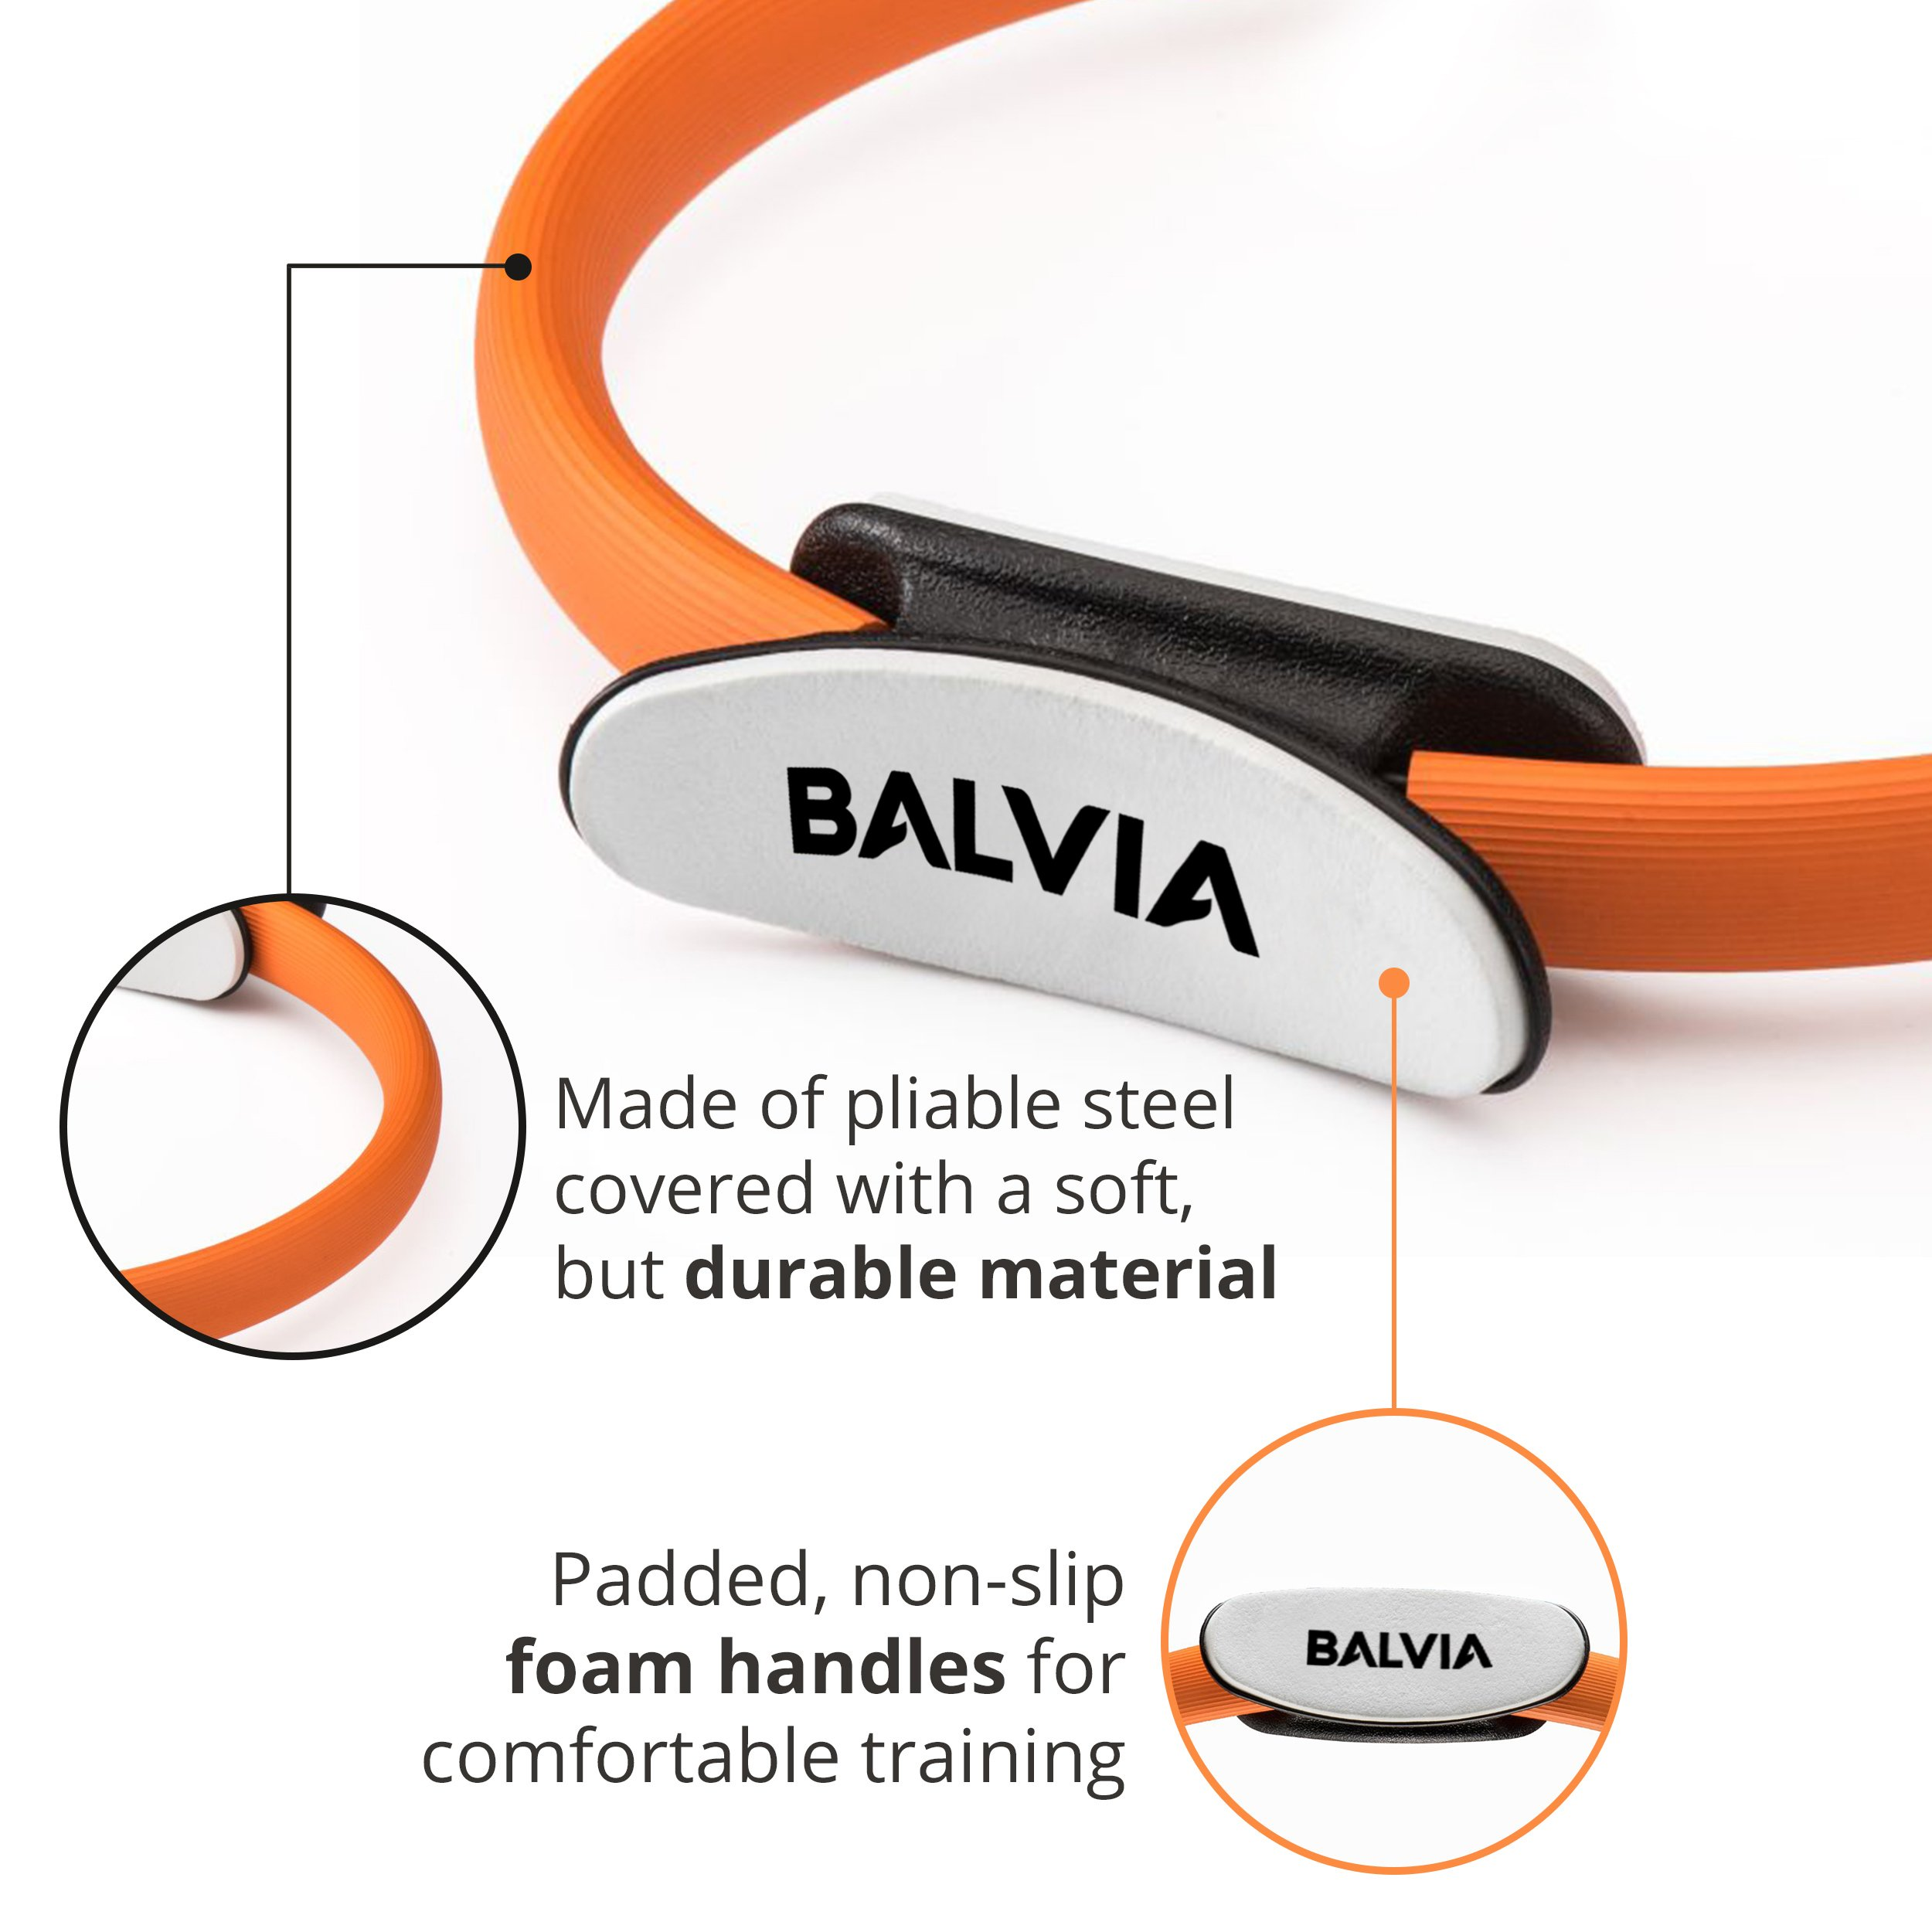 Balvia Fitness Pilates Yoga Ring Equipment Bundle with Non-Slip Grip Handles - Carrying Bag, Massage Ball and Exercise E-book Included - Premium Full Body Toning Fitness Circle by Balvia Fitness (Image #4)